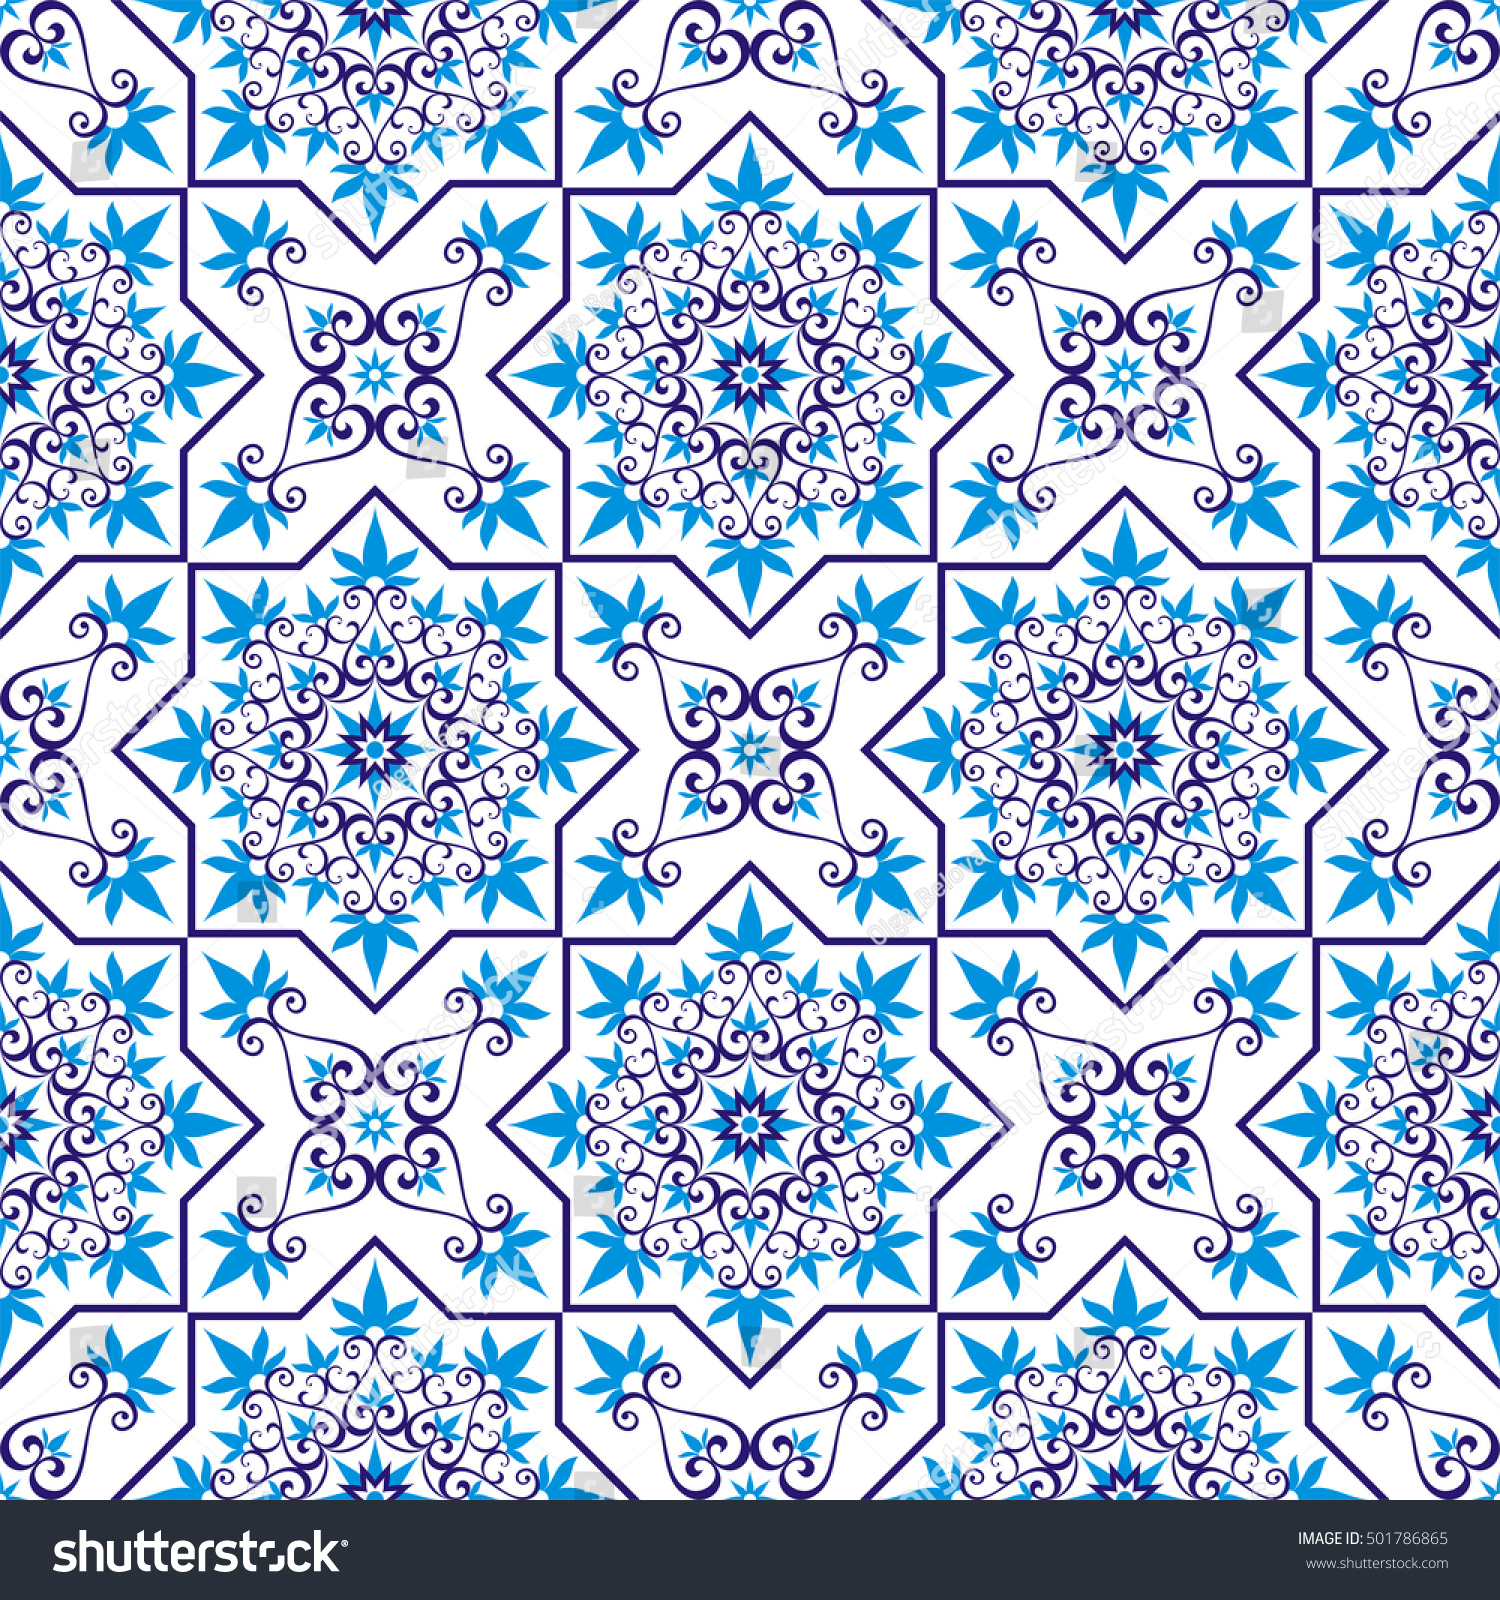 Arabesque pattern moorish style seamless texture stock for Arabesque style decoration